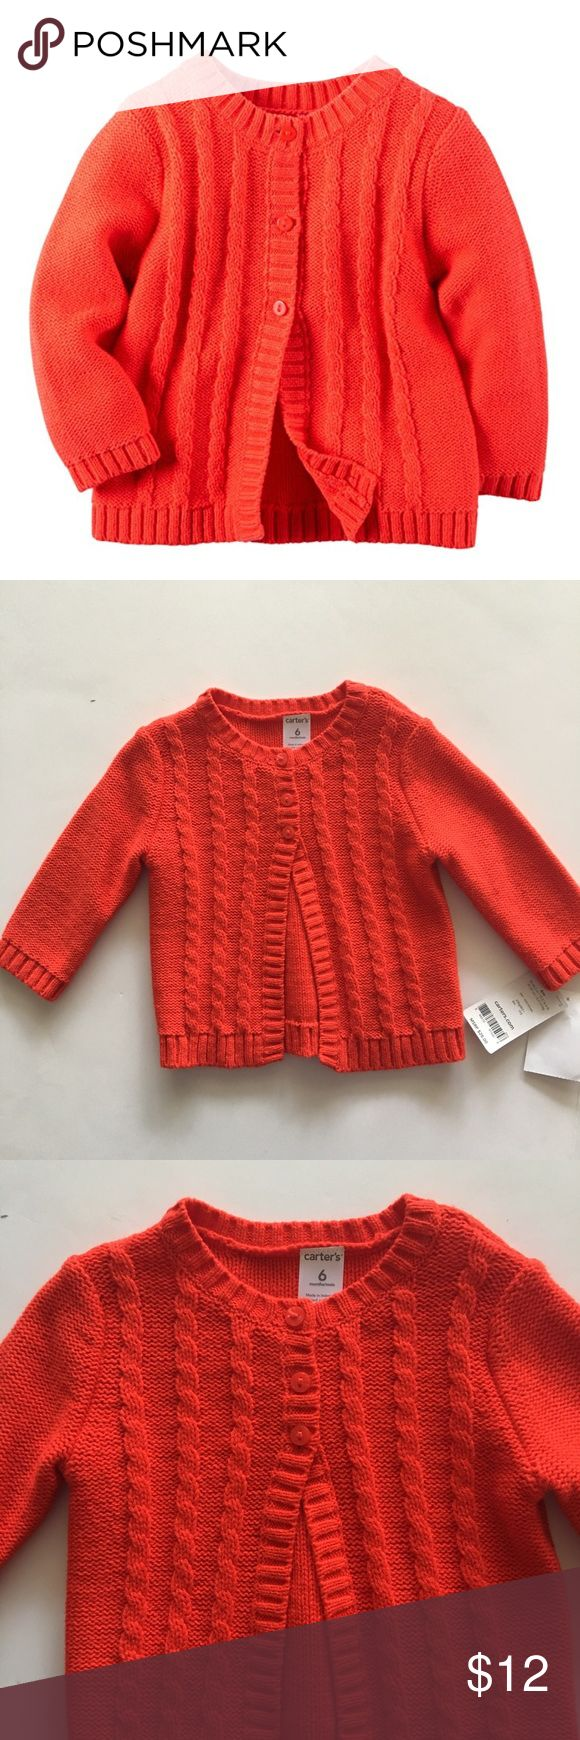 Carter's Red Cardigan Sweater Adorable little sweater with 3 top buttons. NWT Carter's Shirts & Tops Sweaters